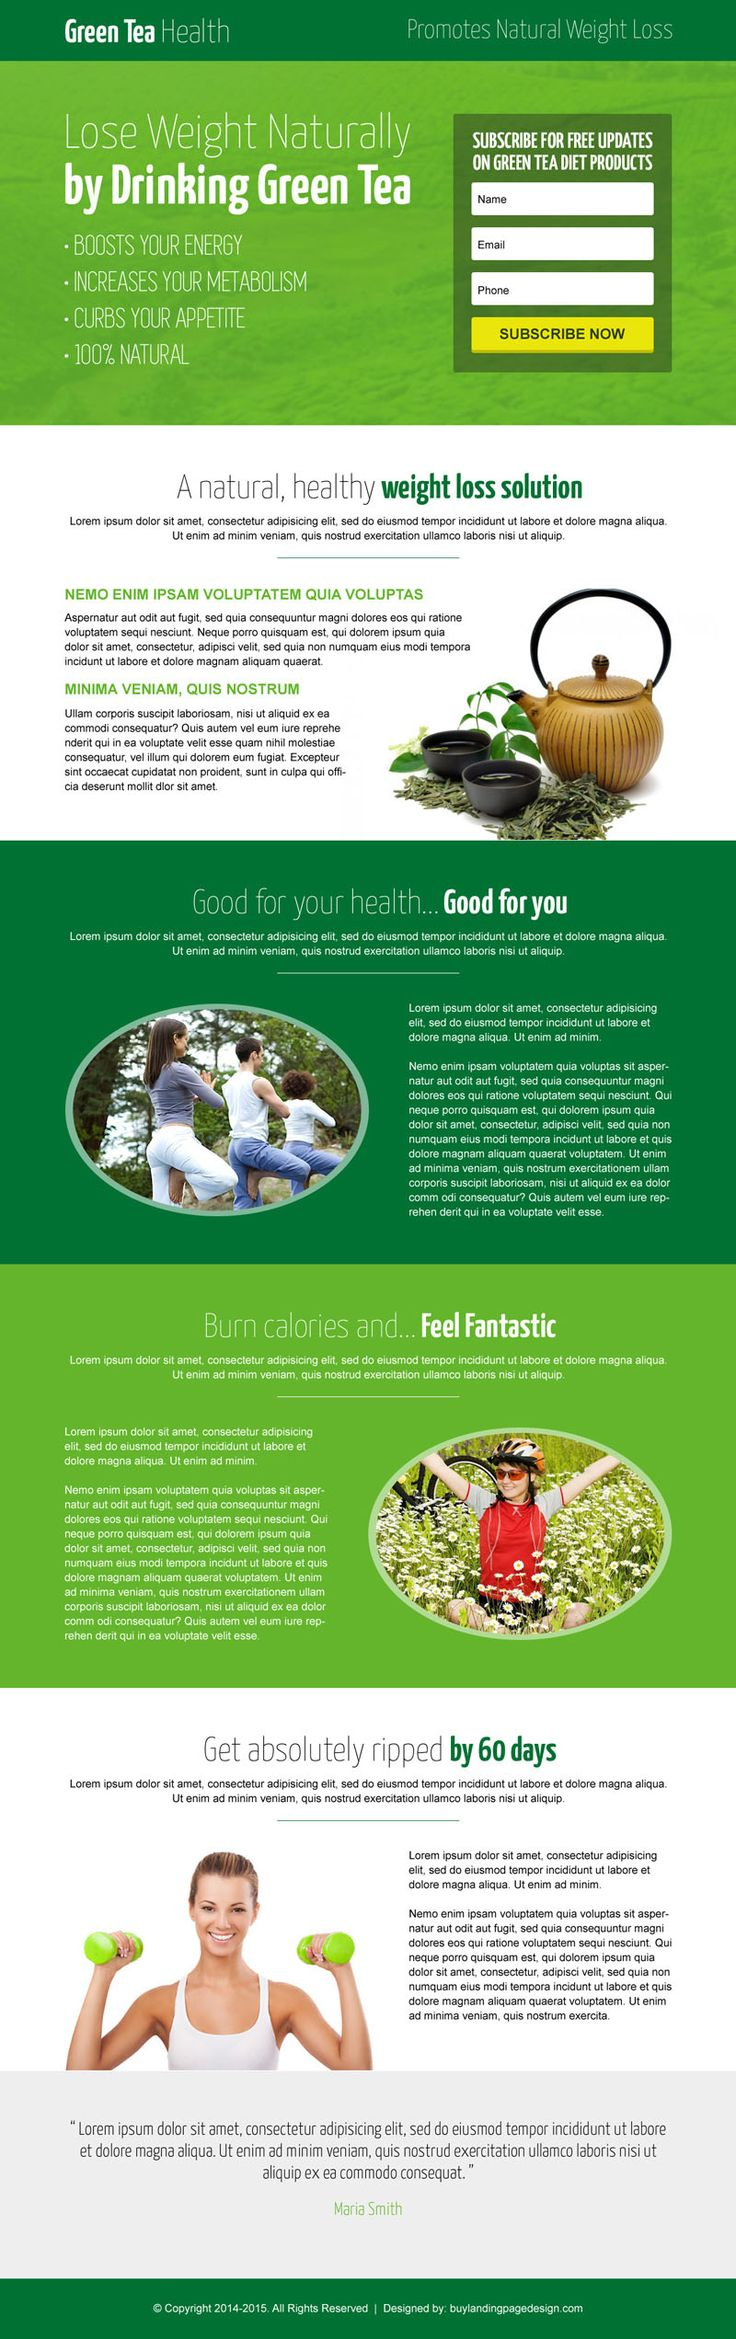 Green tree natural weight loss product selling lead capture landing page design templates from https://www.buylandingpagedesign.com/buy/green-tea-natural-weight-loss-responsive-landing-page-design/1376